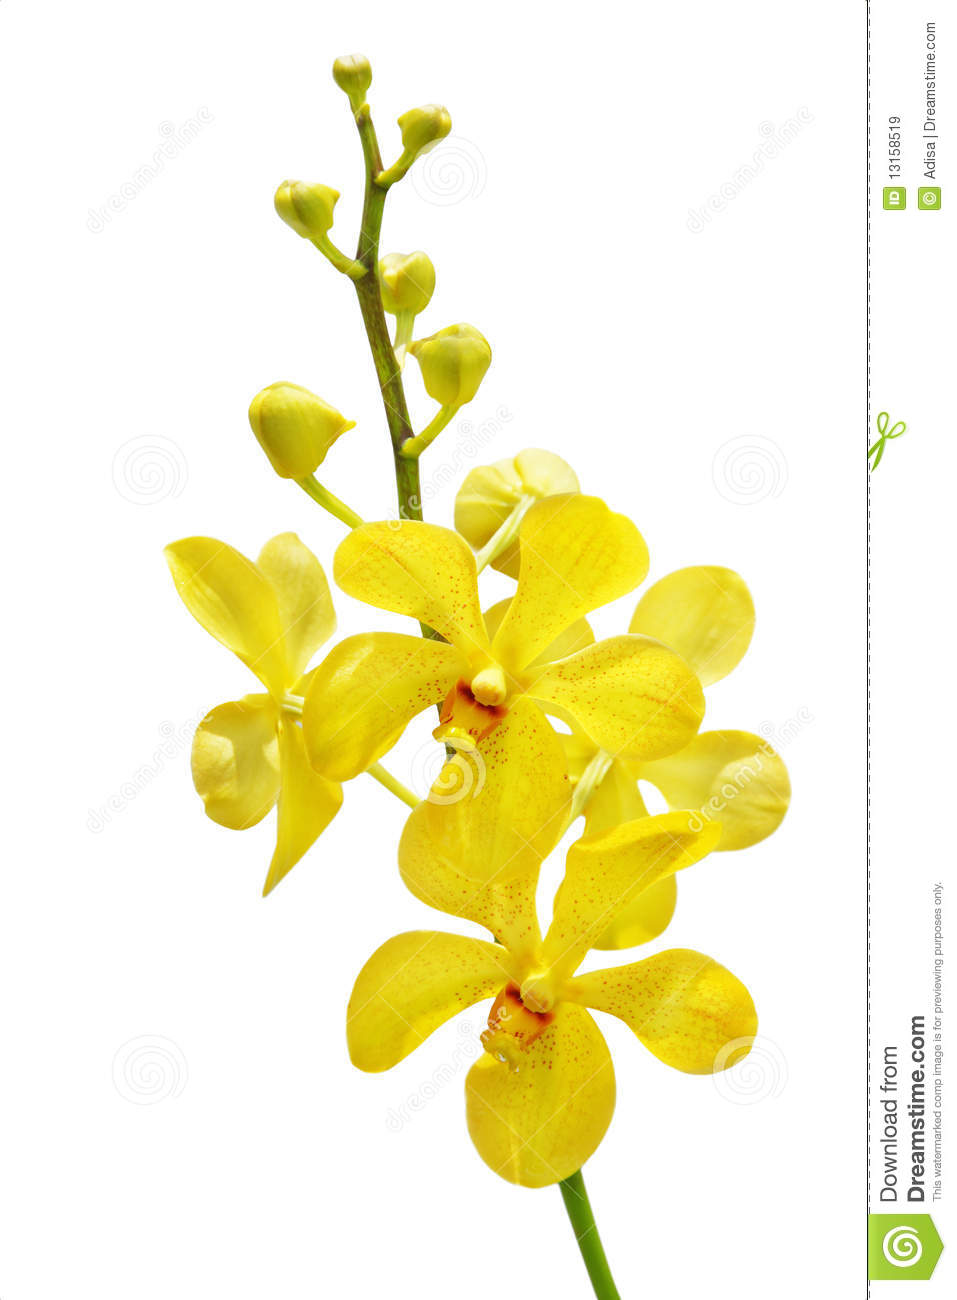 Yellow Orchid Royalty Free Stock Images - Image: 13158519 Leelawadee